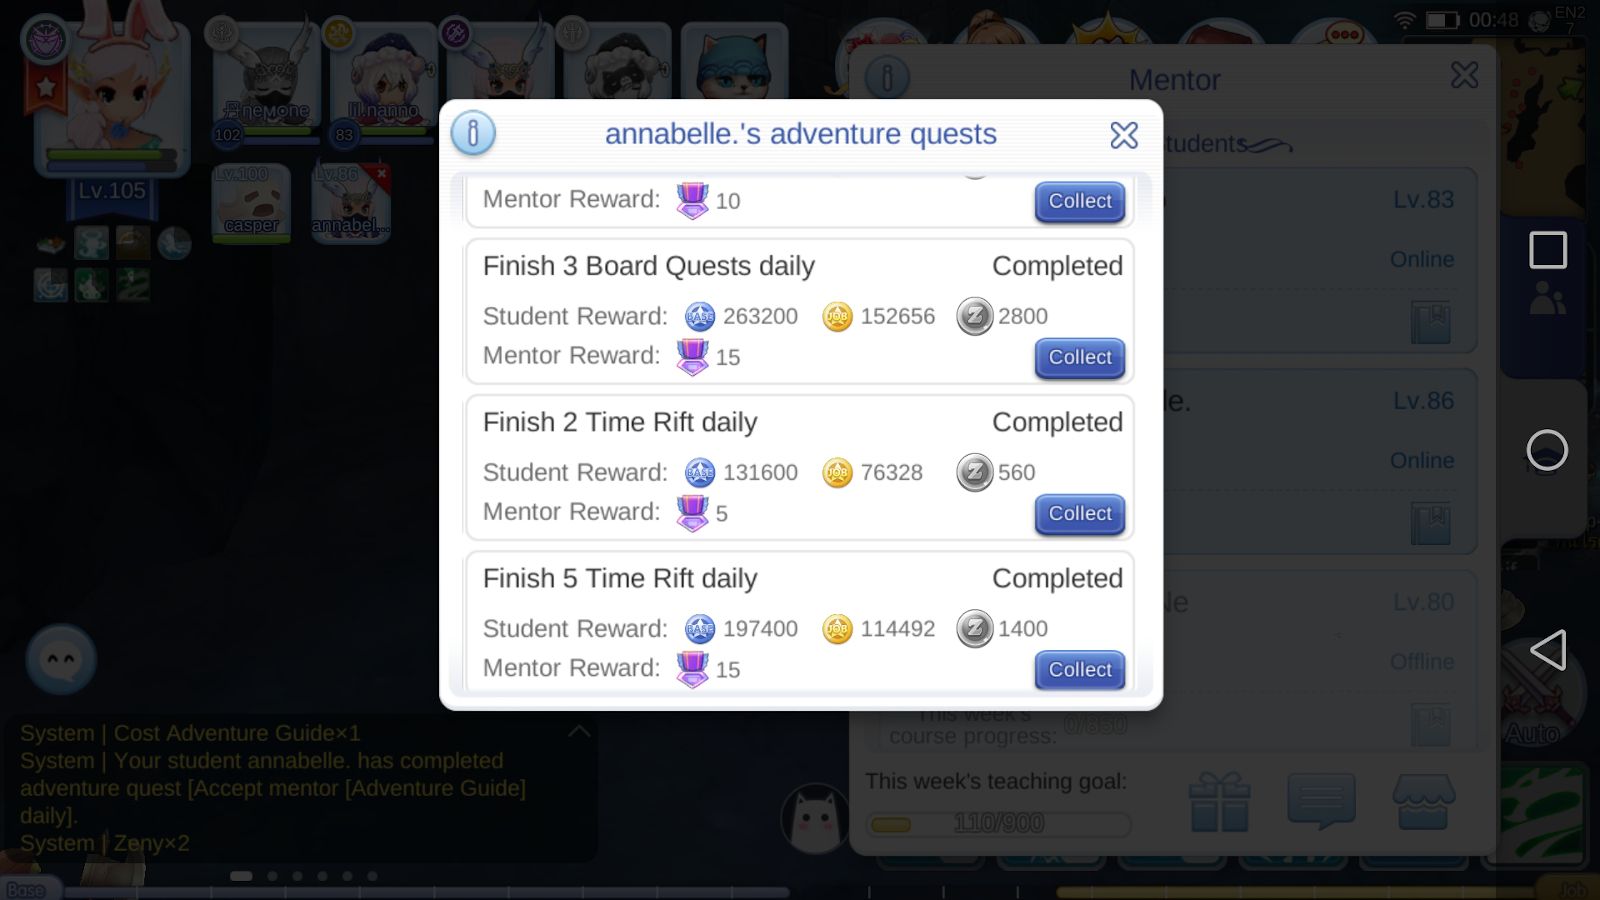 Complete Student Daily Adventure Quests